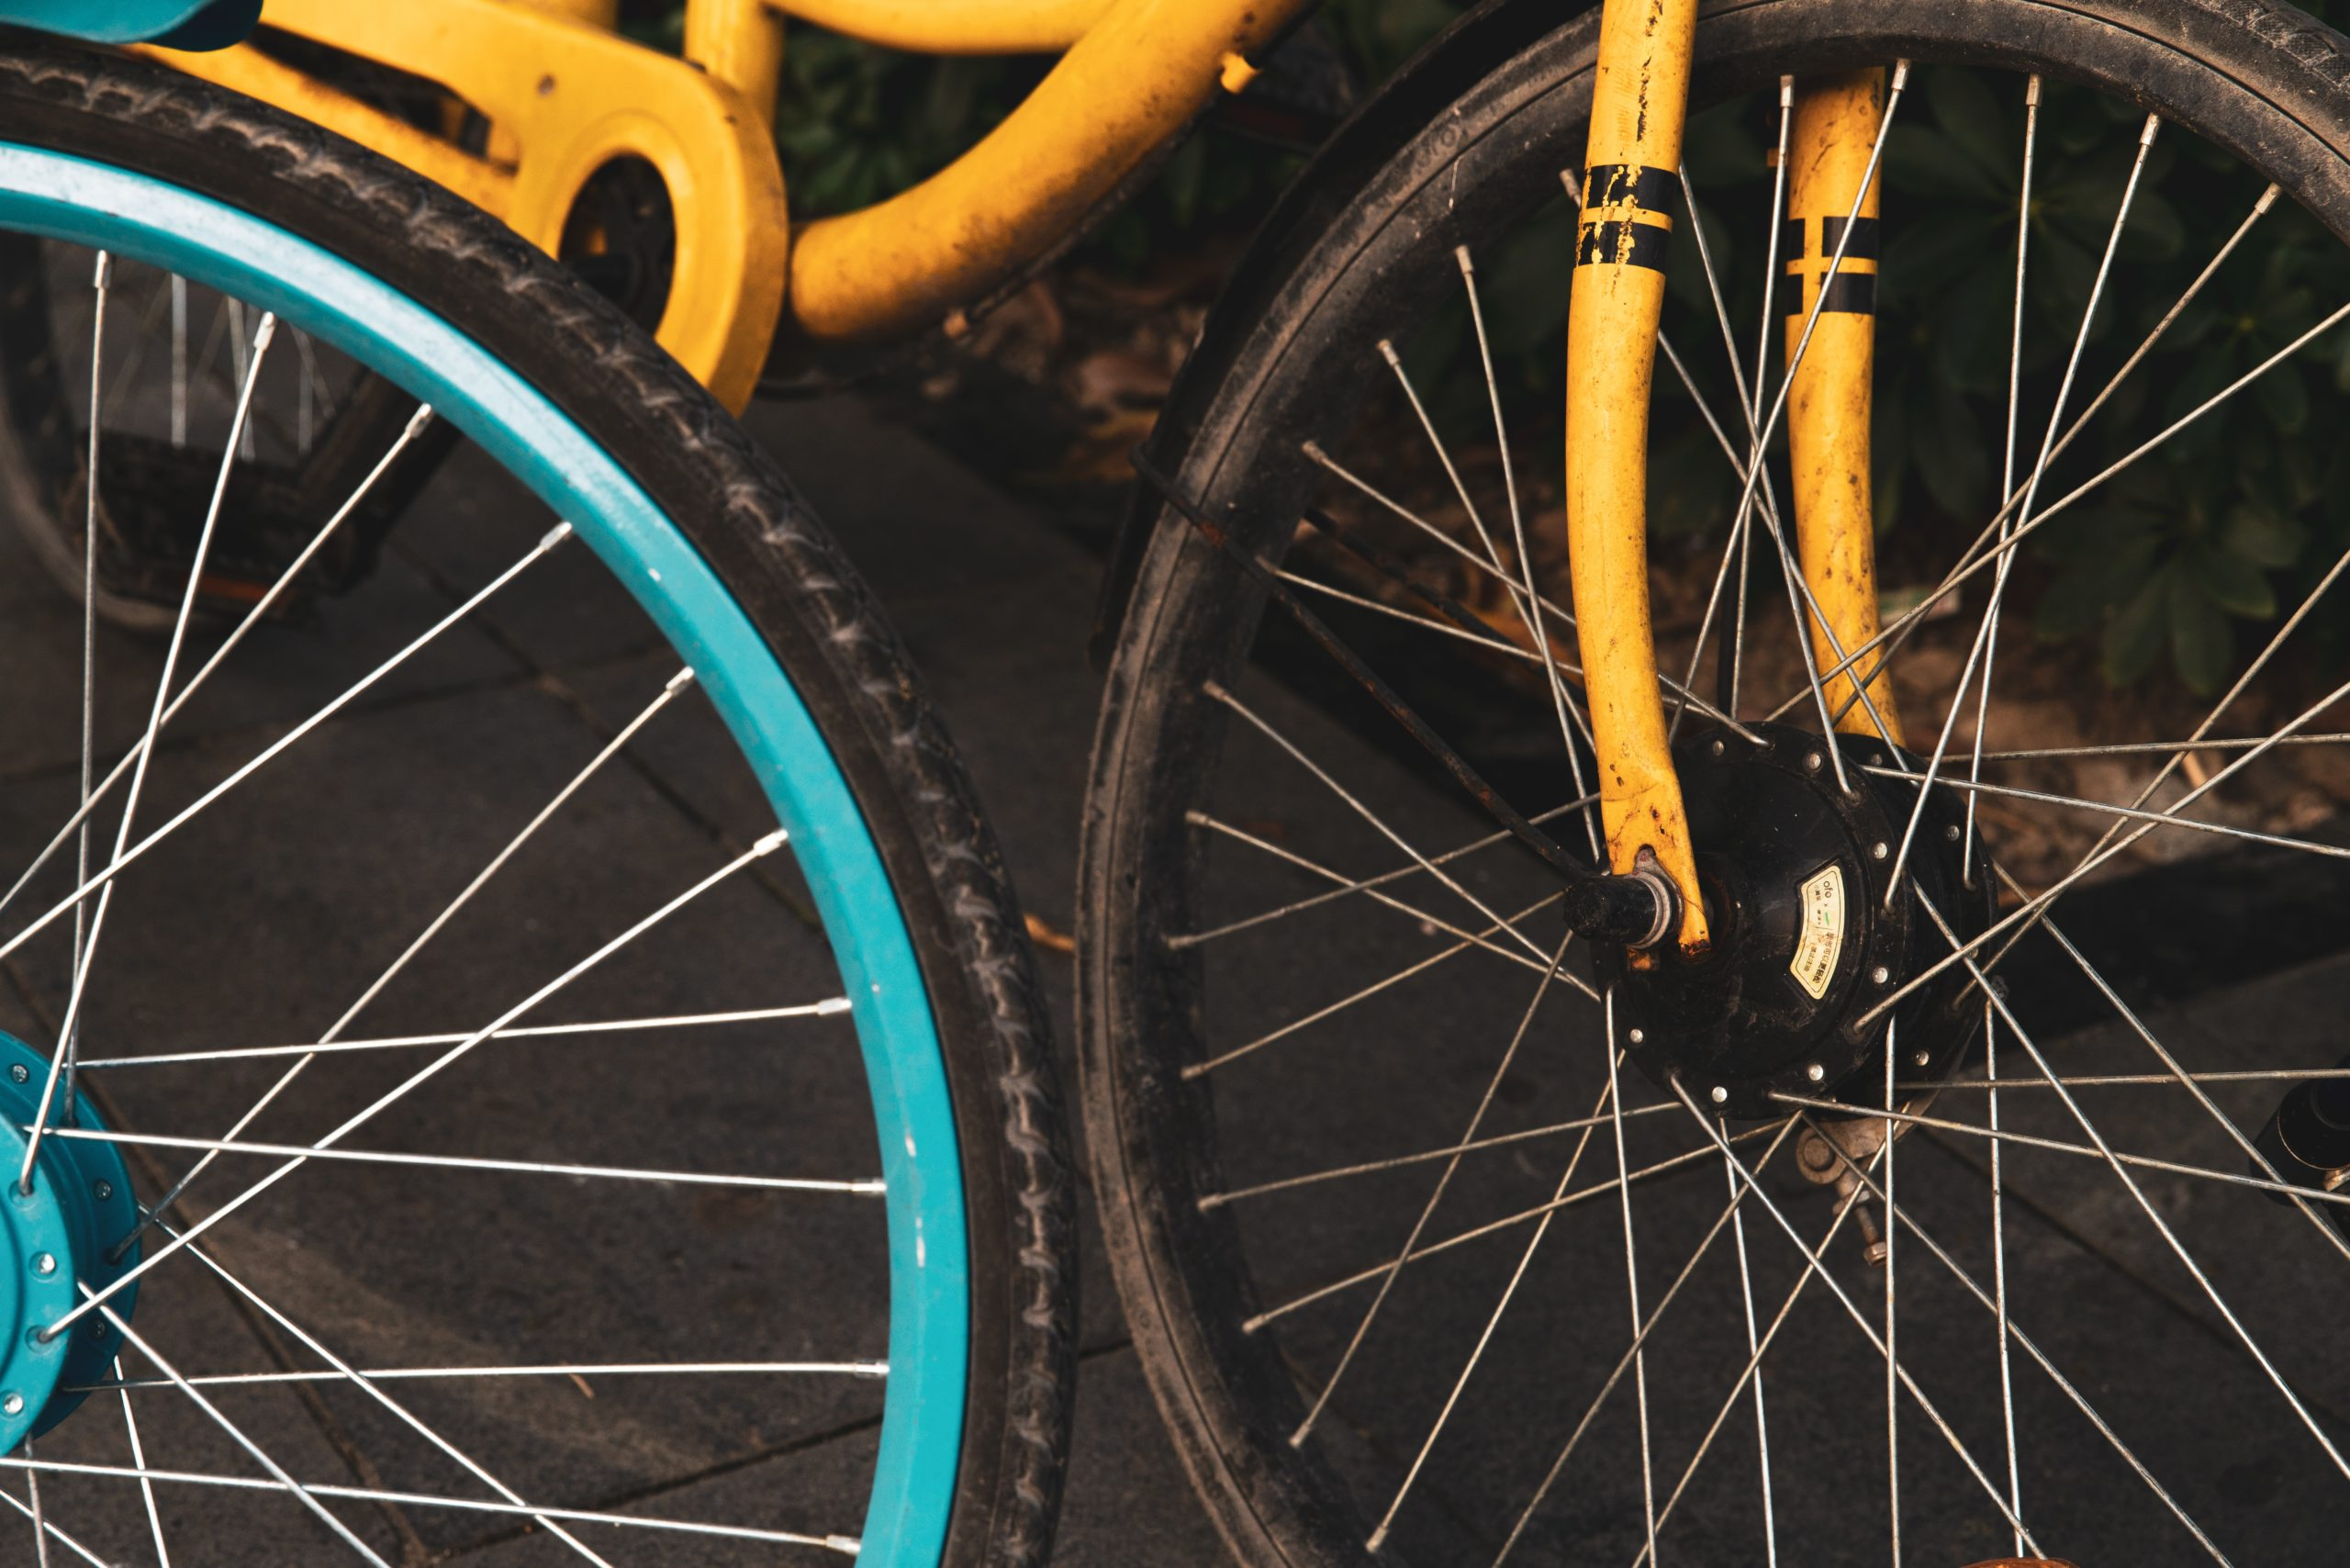 a picture of the spokes of a yellow and blue bike